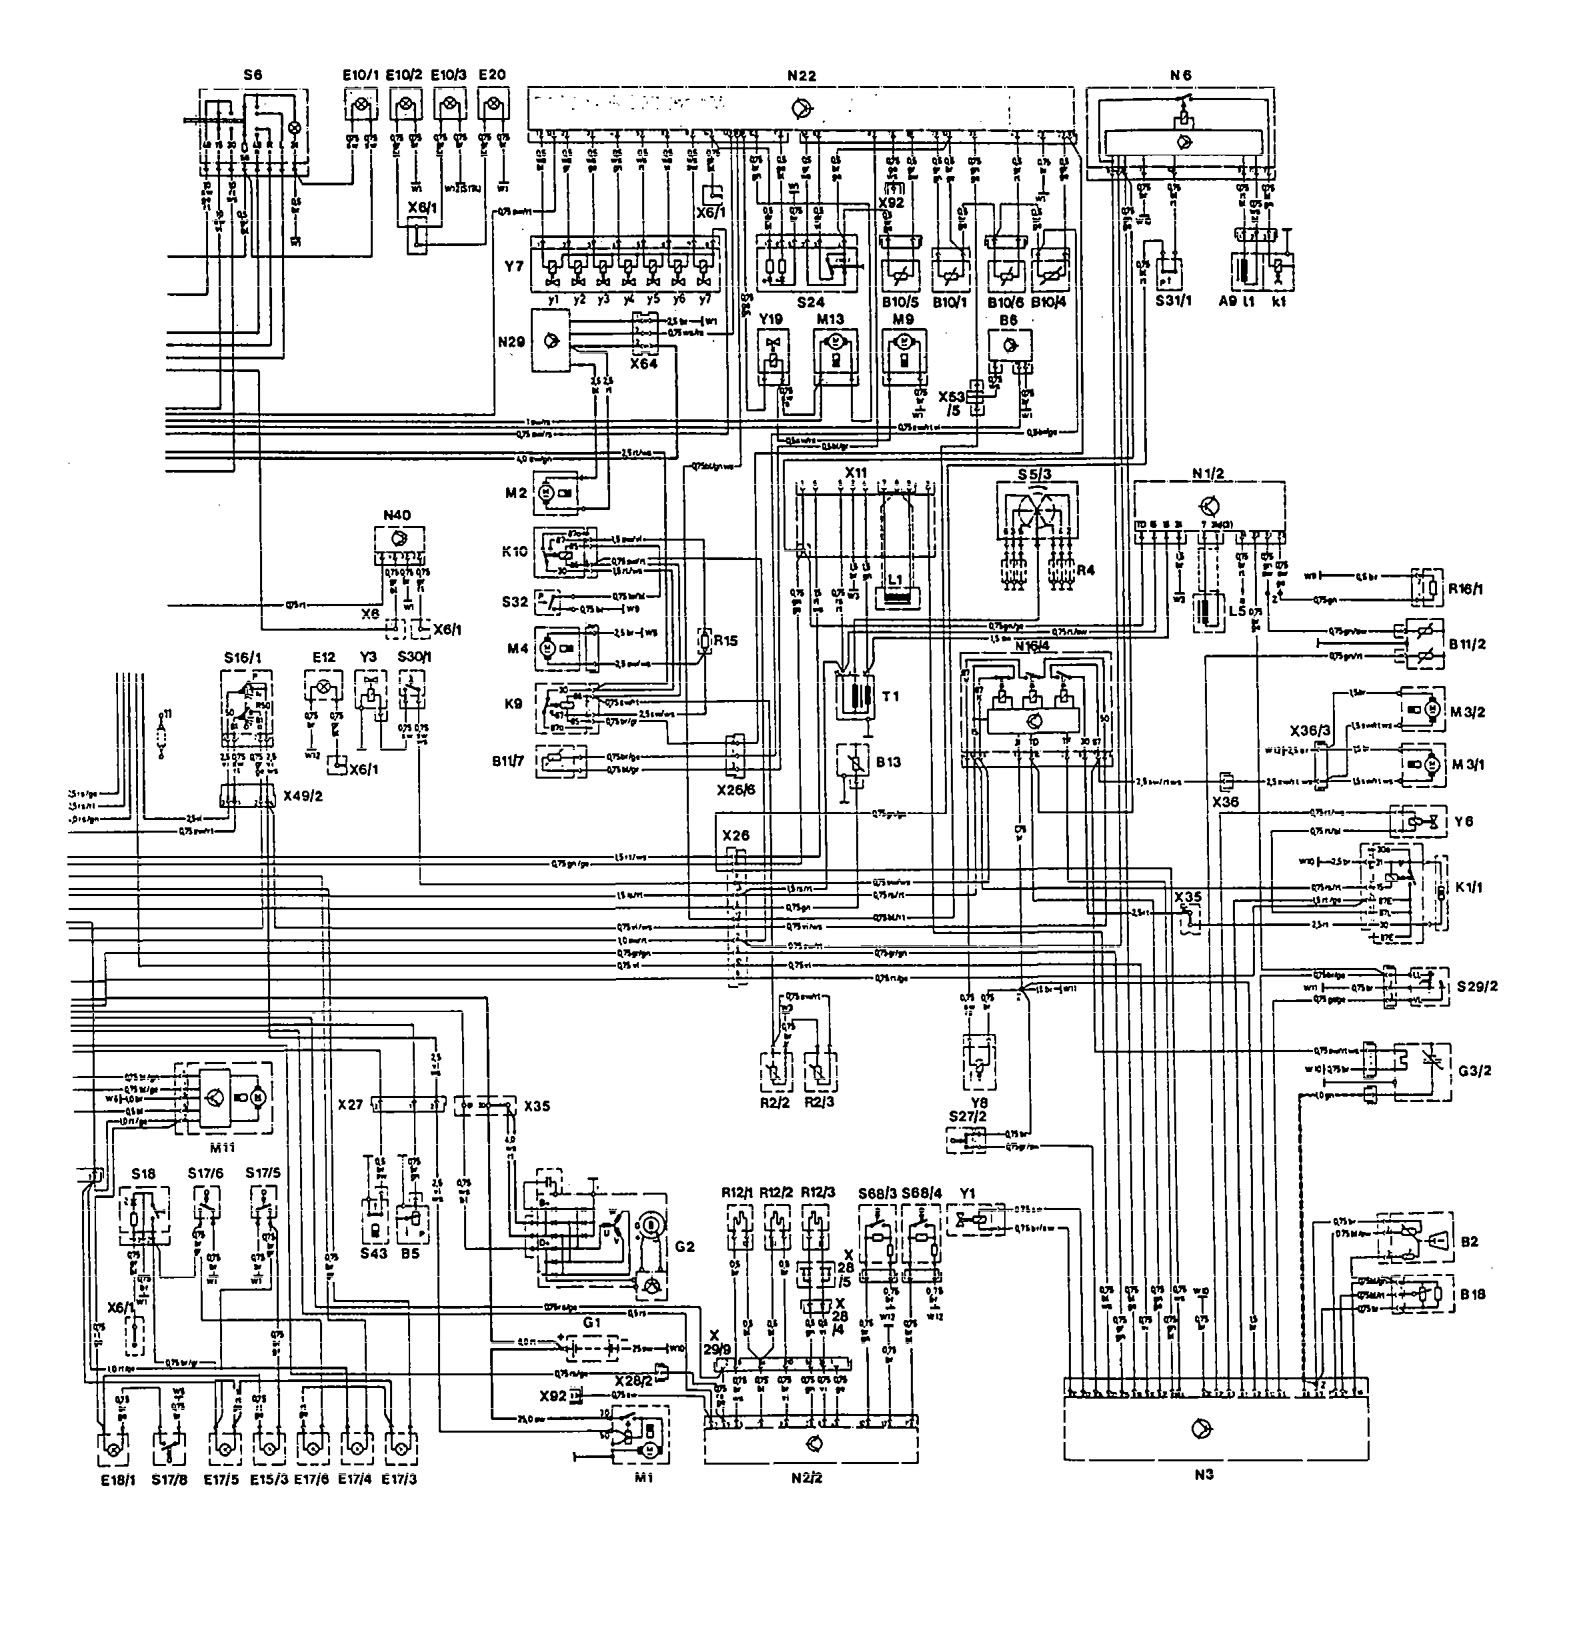 Mercedes-Benz 400E (1992 - 1993) - wiring diagrams - instrumentation -  Carknowledge.infoCarknowledge.info